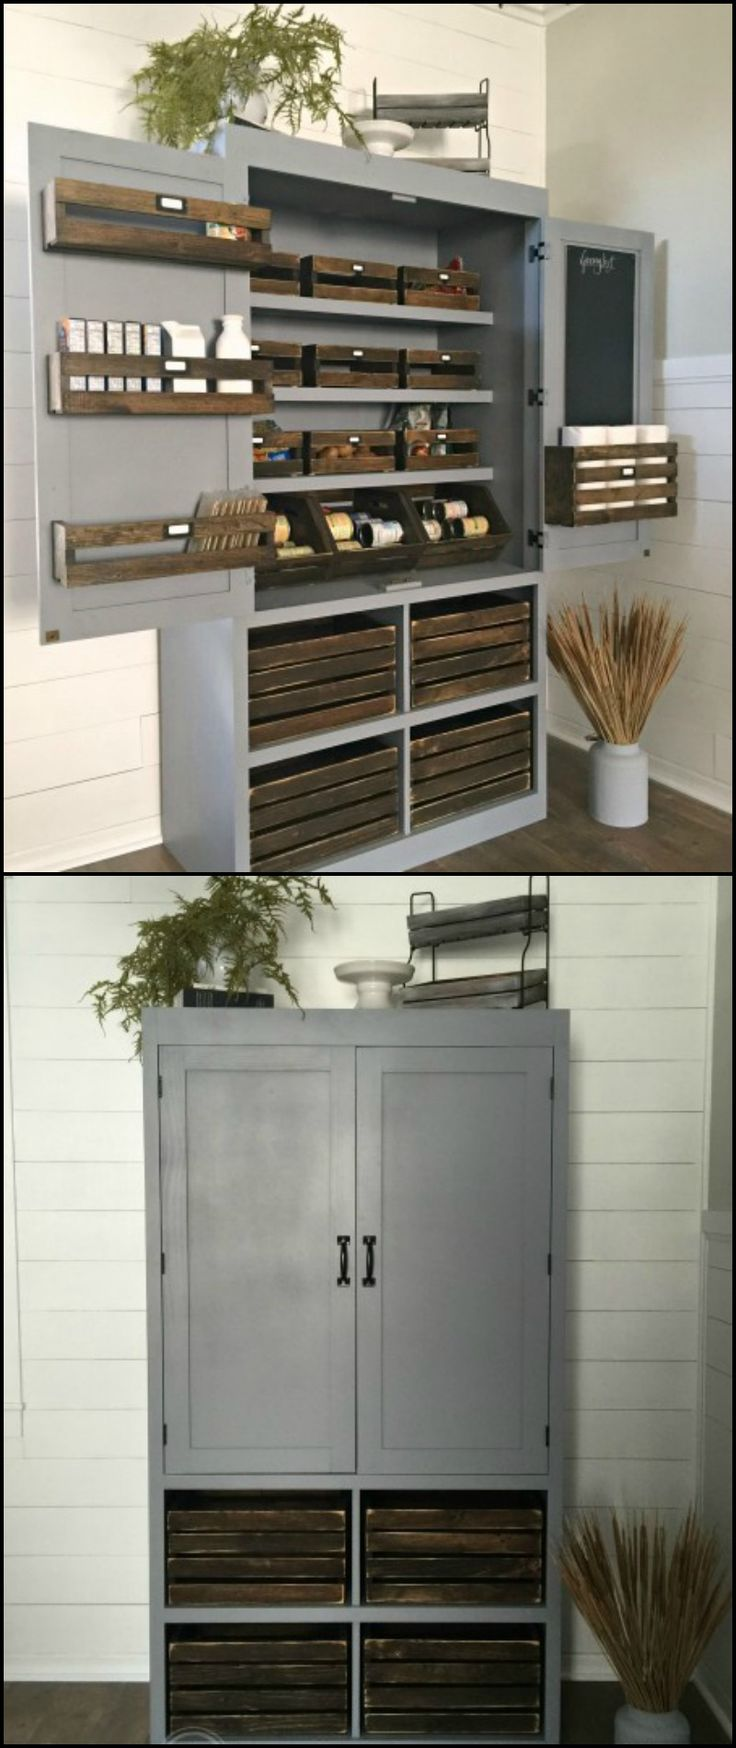 Build A Freestanding Pantry Small Kitchens Cabinets And